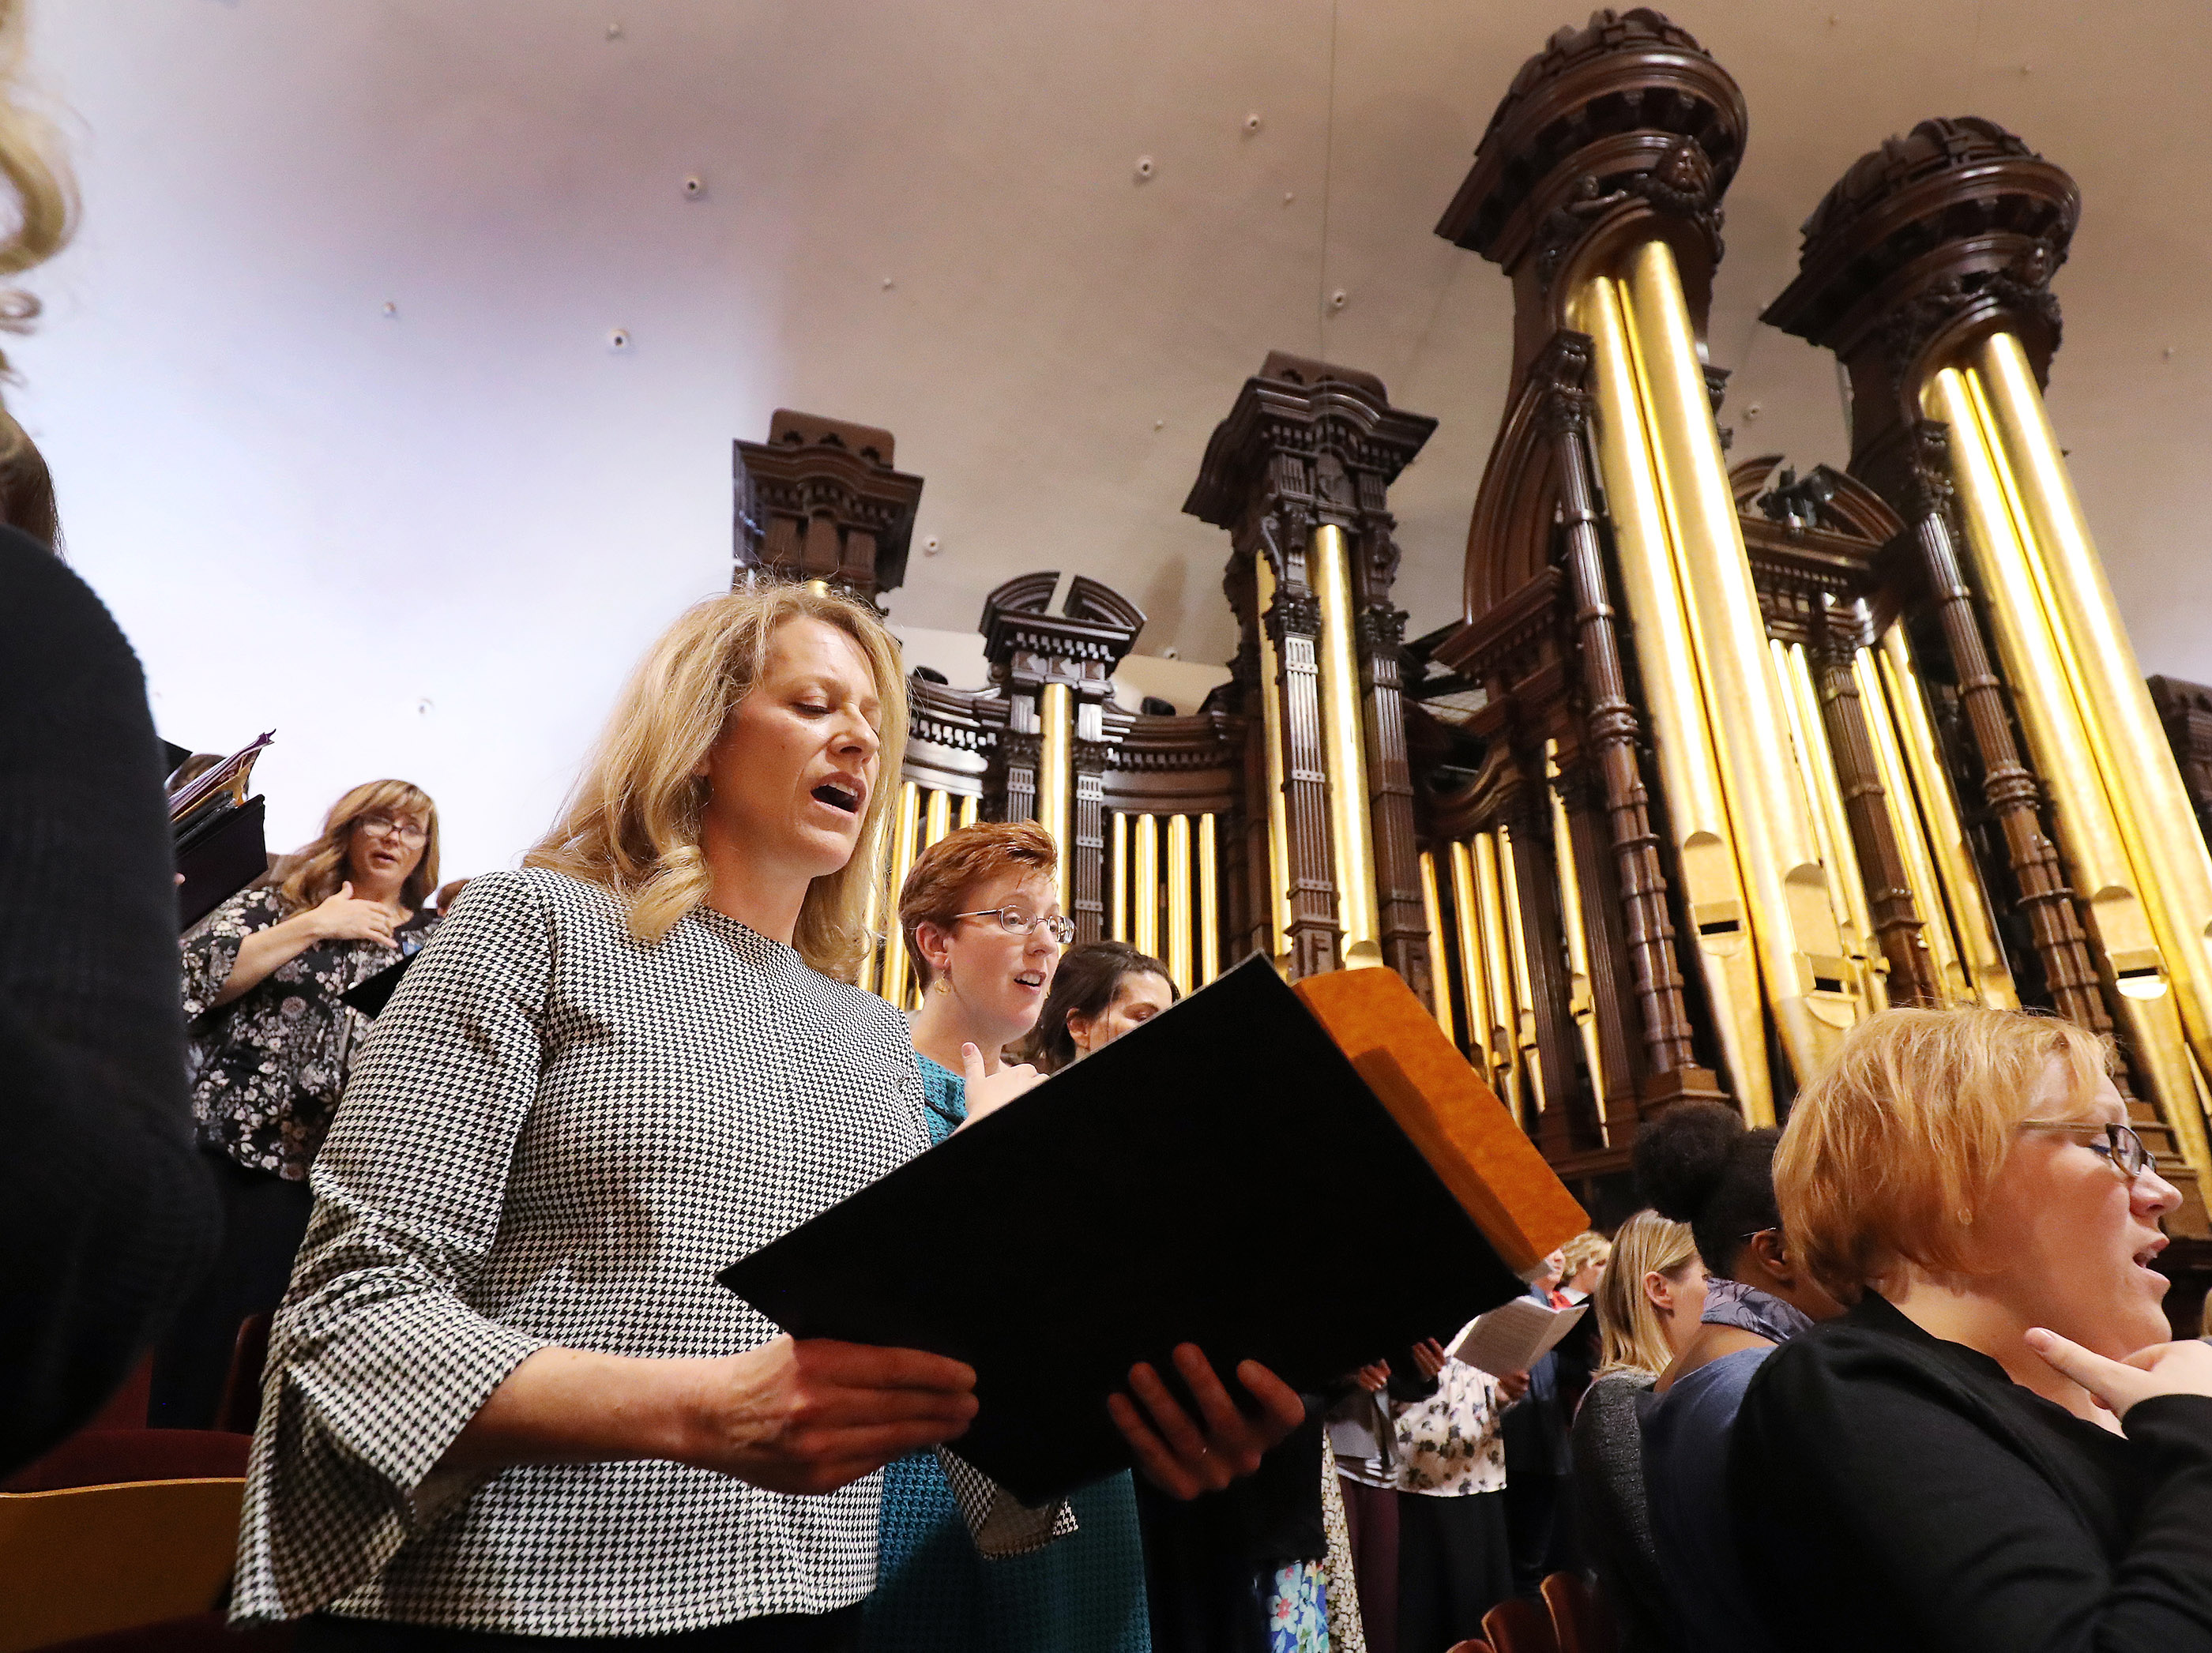 Debbie Matheson rehearses with The Tabernacle Choir at Temple Square in Salt Lake City on Thursday, April 11, 2019. Four people were selected through social media to sing with the choir.